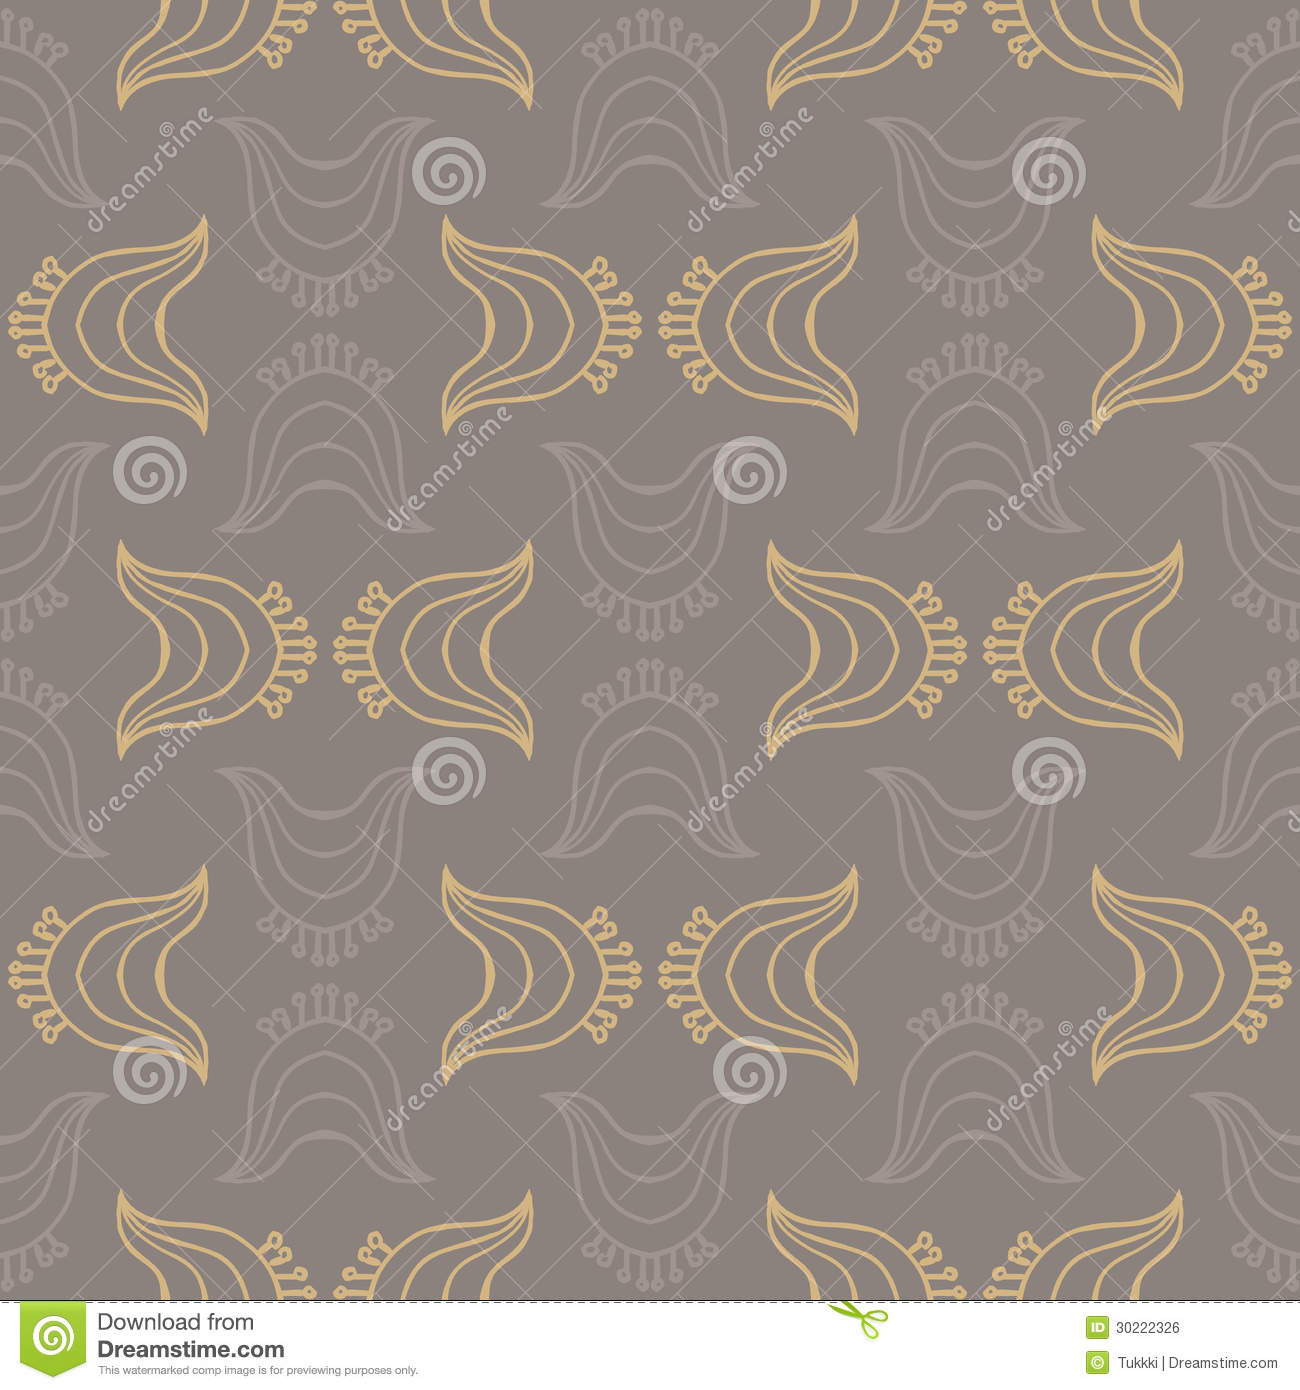 vintage pattern with organic shapes stock vector - illustration of